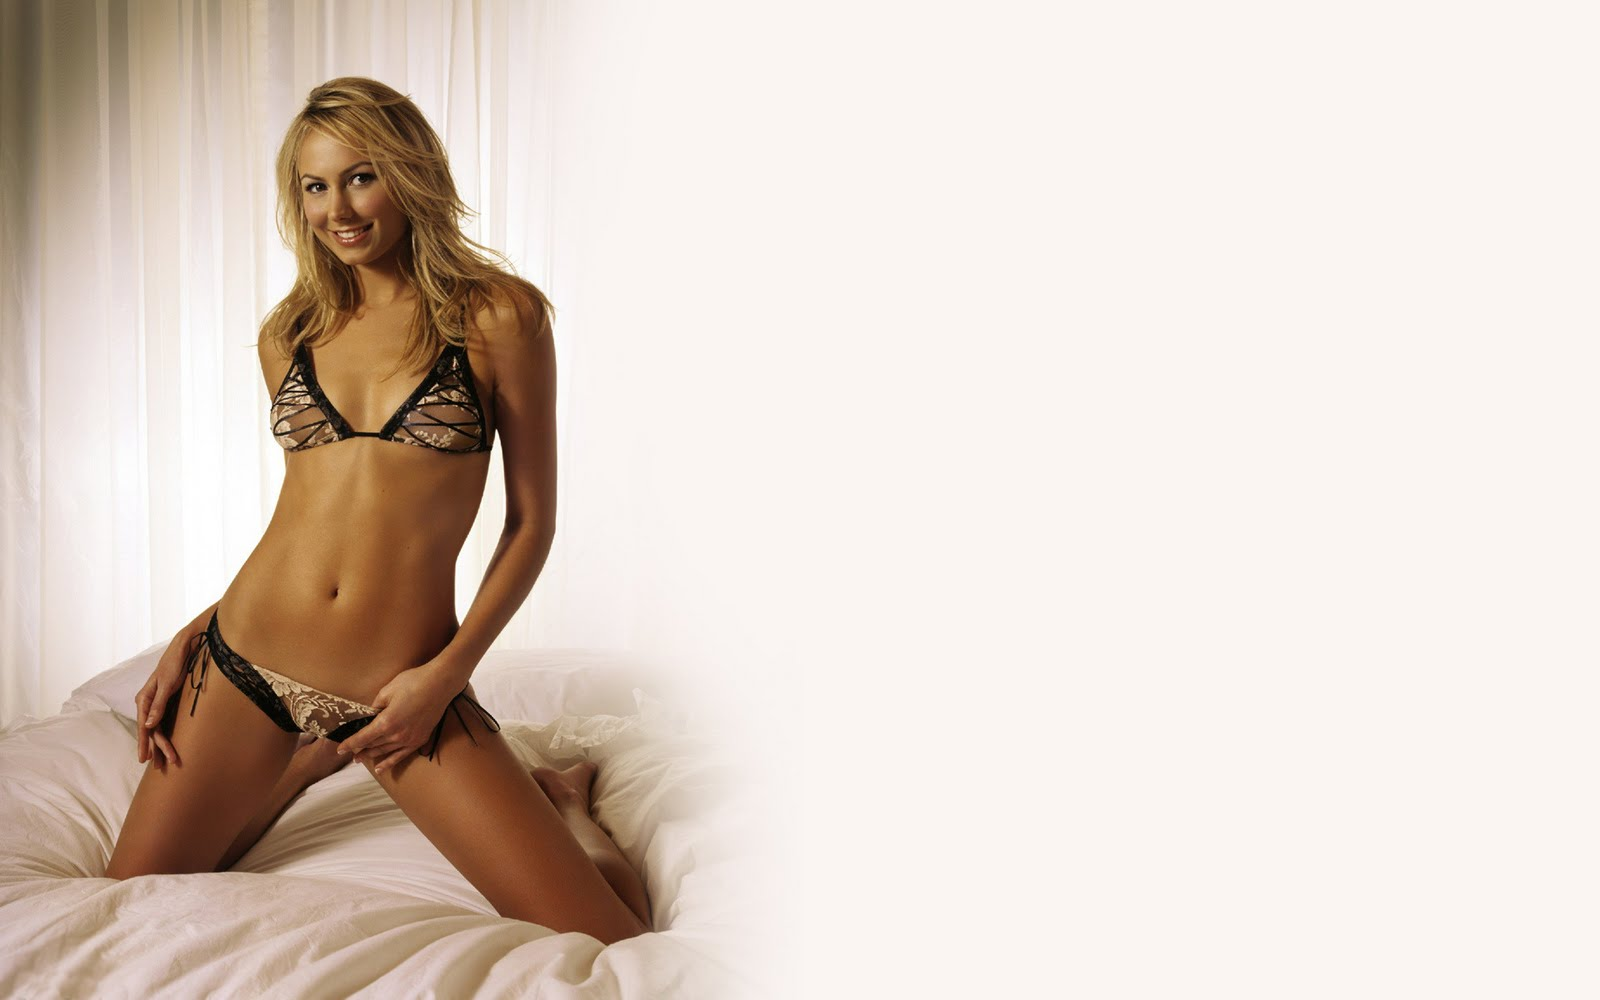 47 stacy keibler wallpapers - photo #5